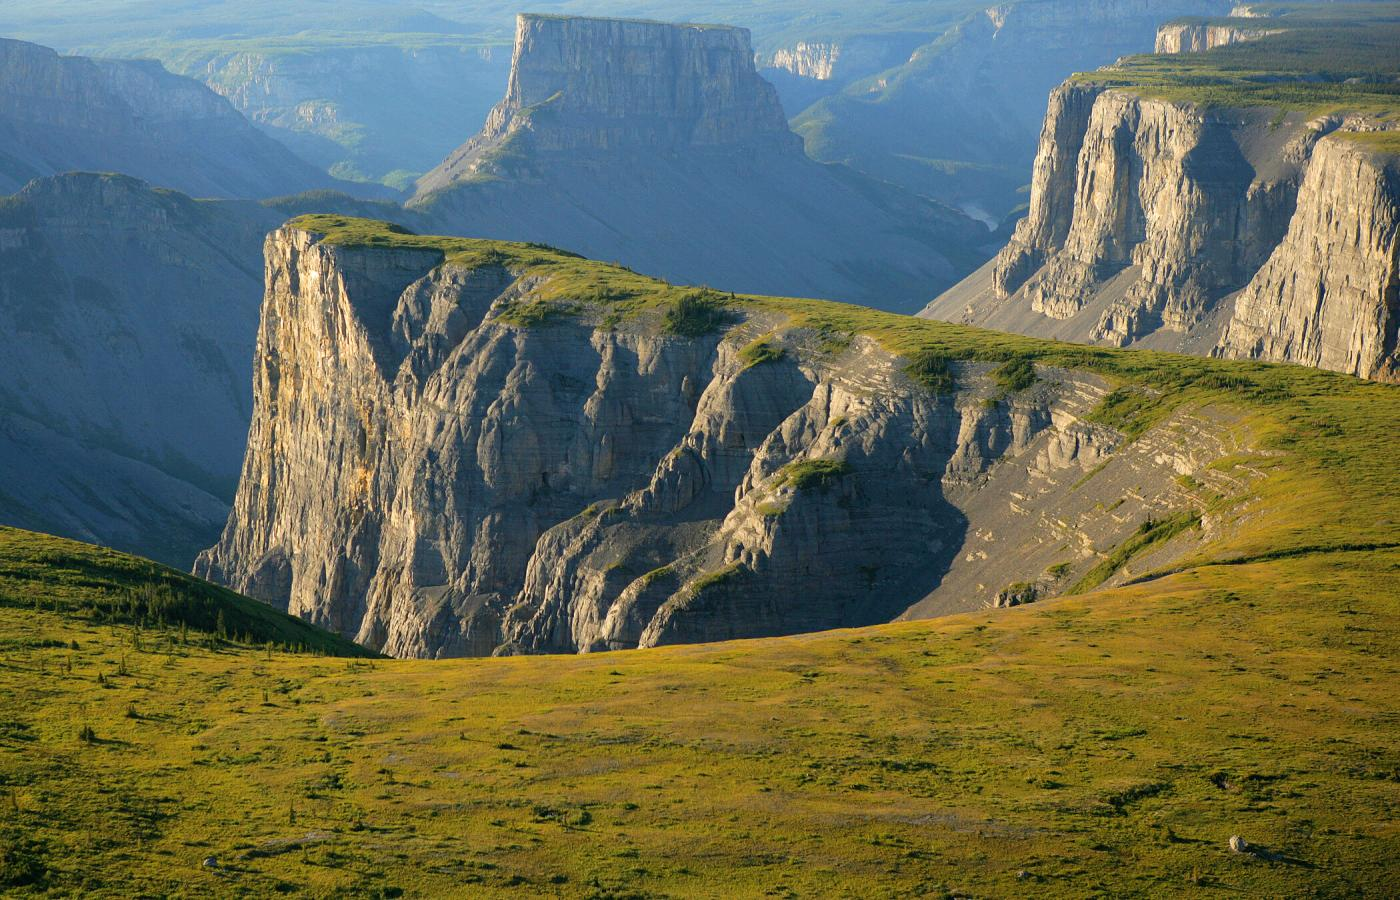 The Ram Plateau will make your jaw drop in the Nahanni National Park Reserve in Canada's Northwest Territories.